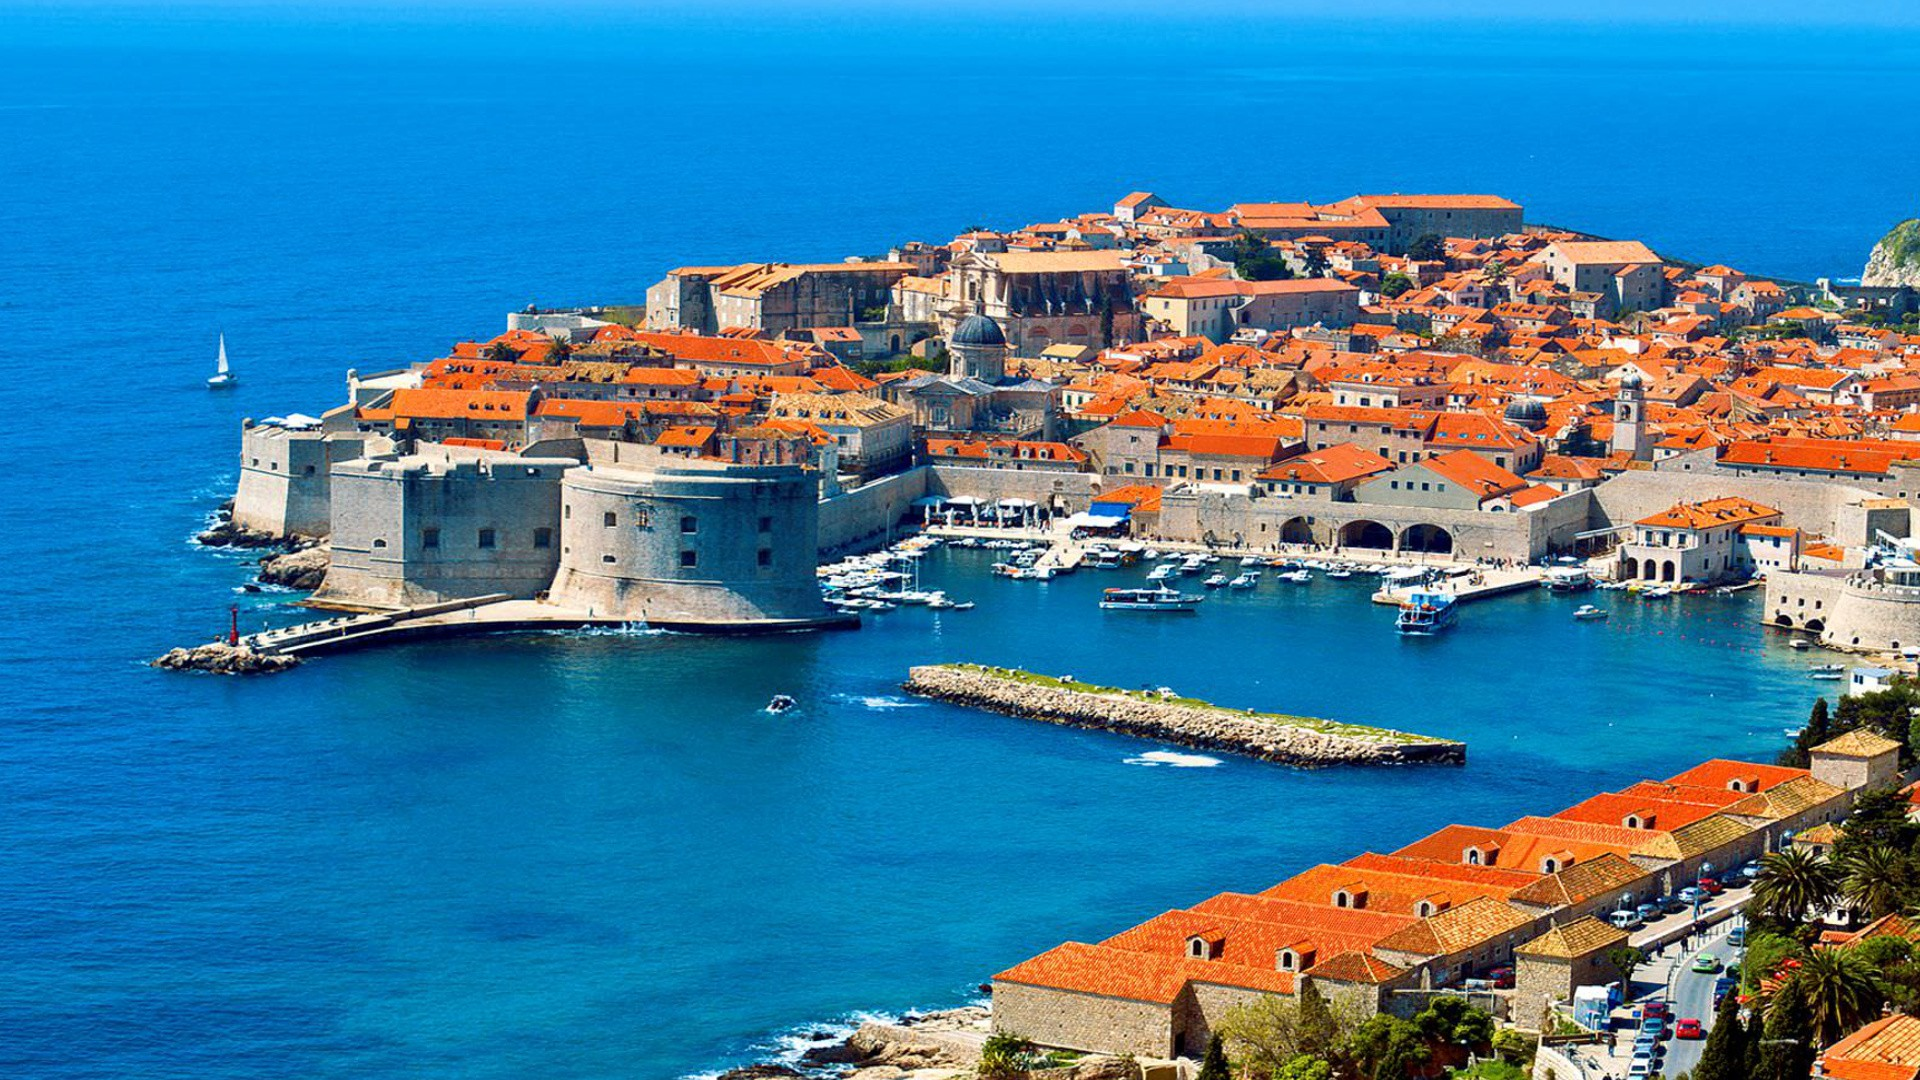 Dubrovnik, only 6km away from Mlini